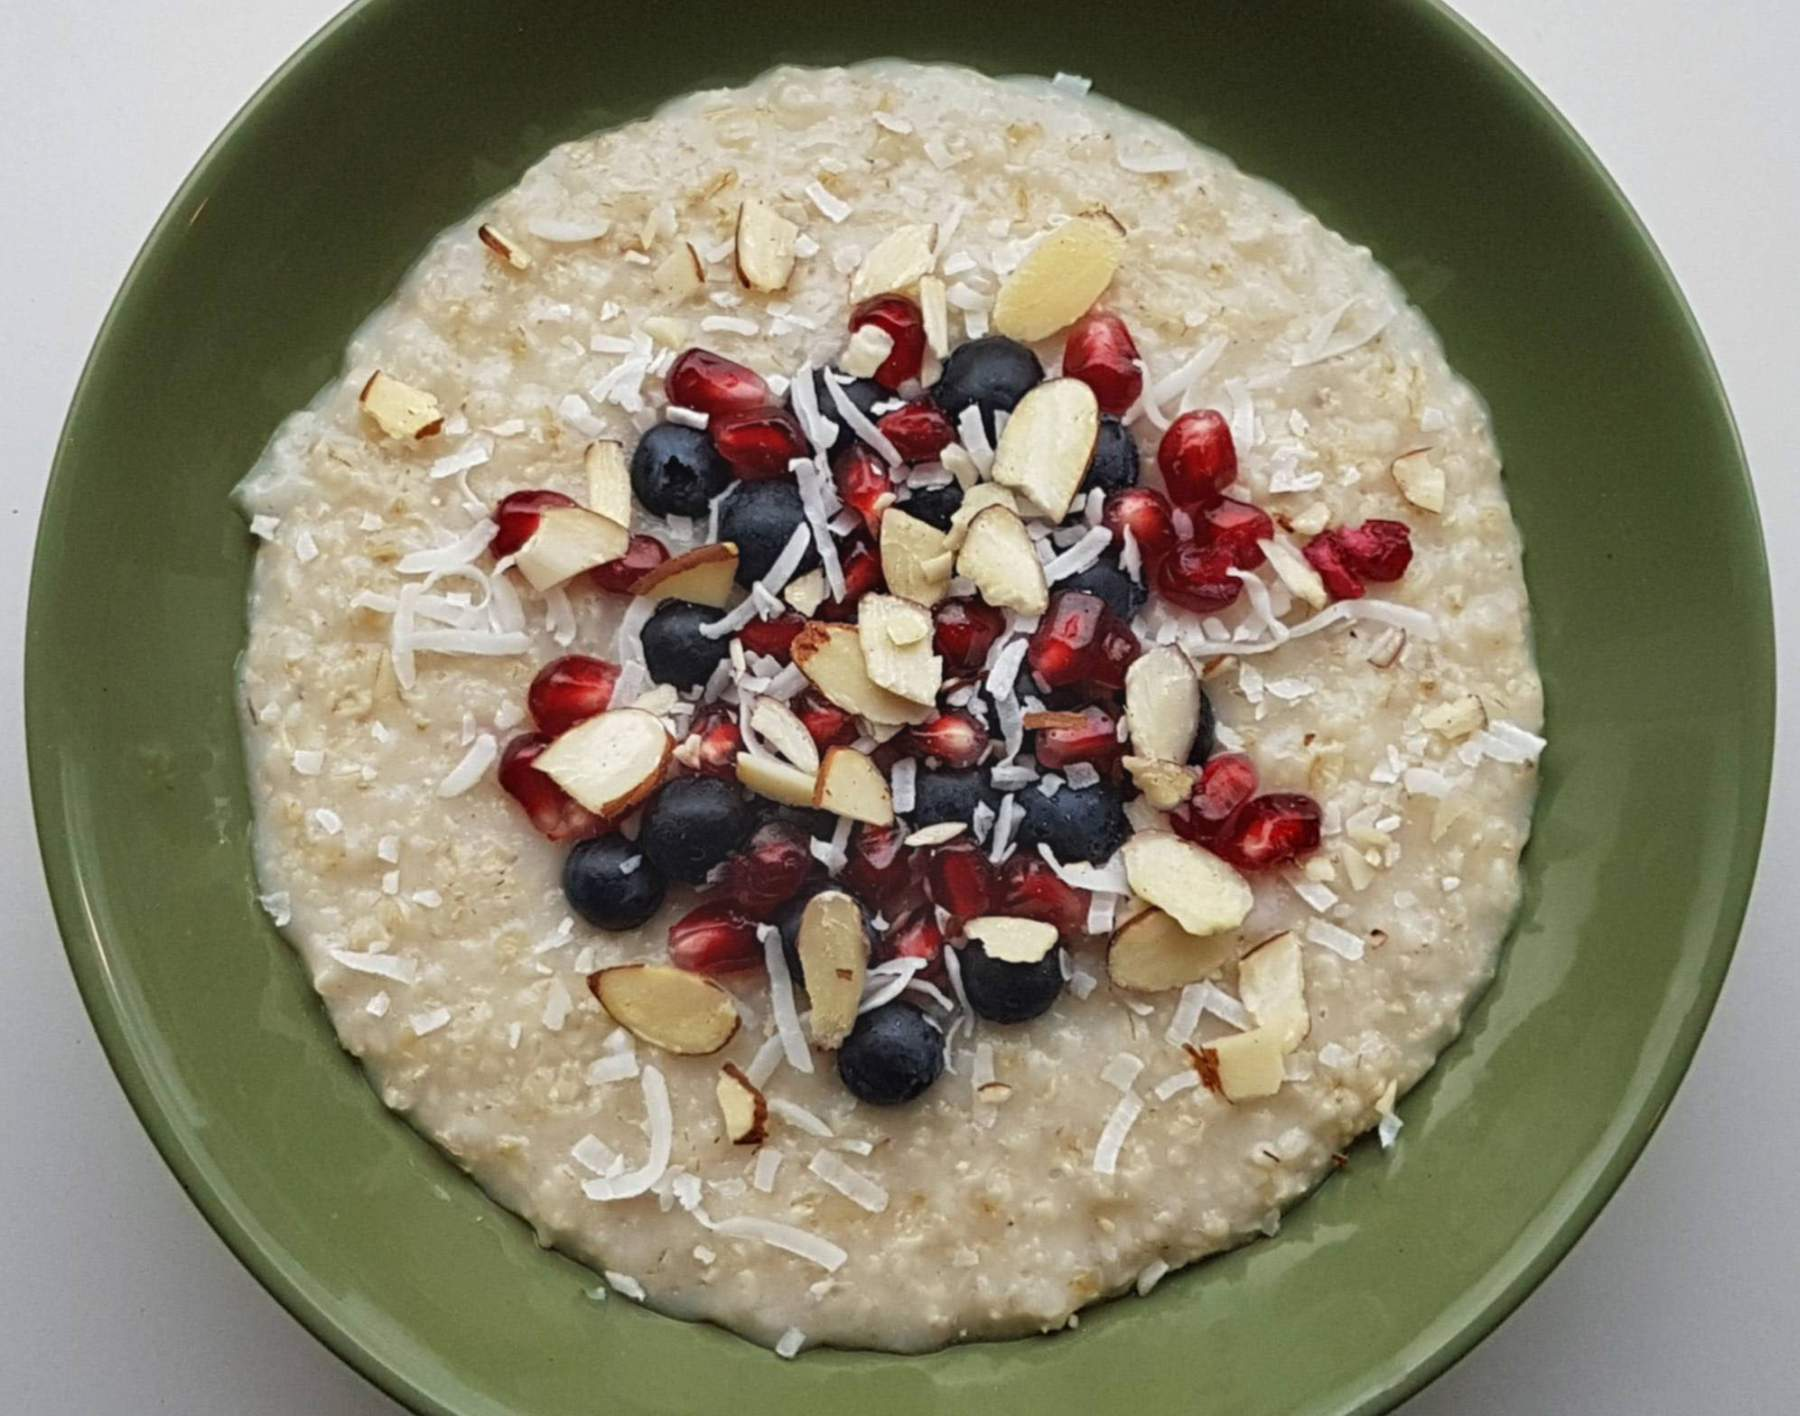 Porridge with pomegranate, blueberries and coconut